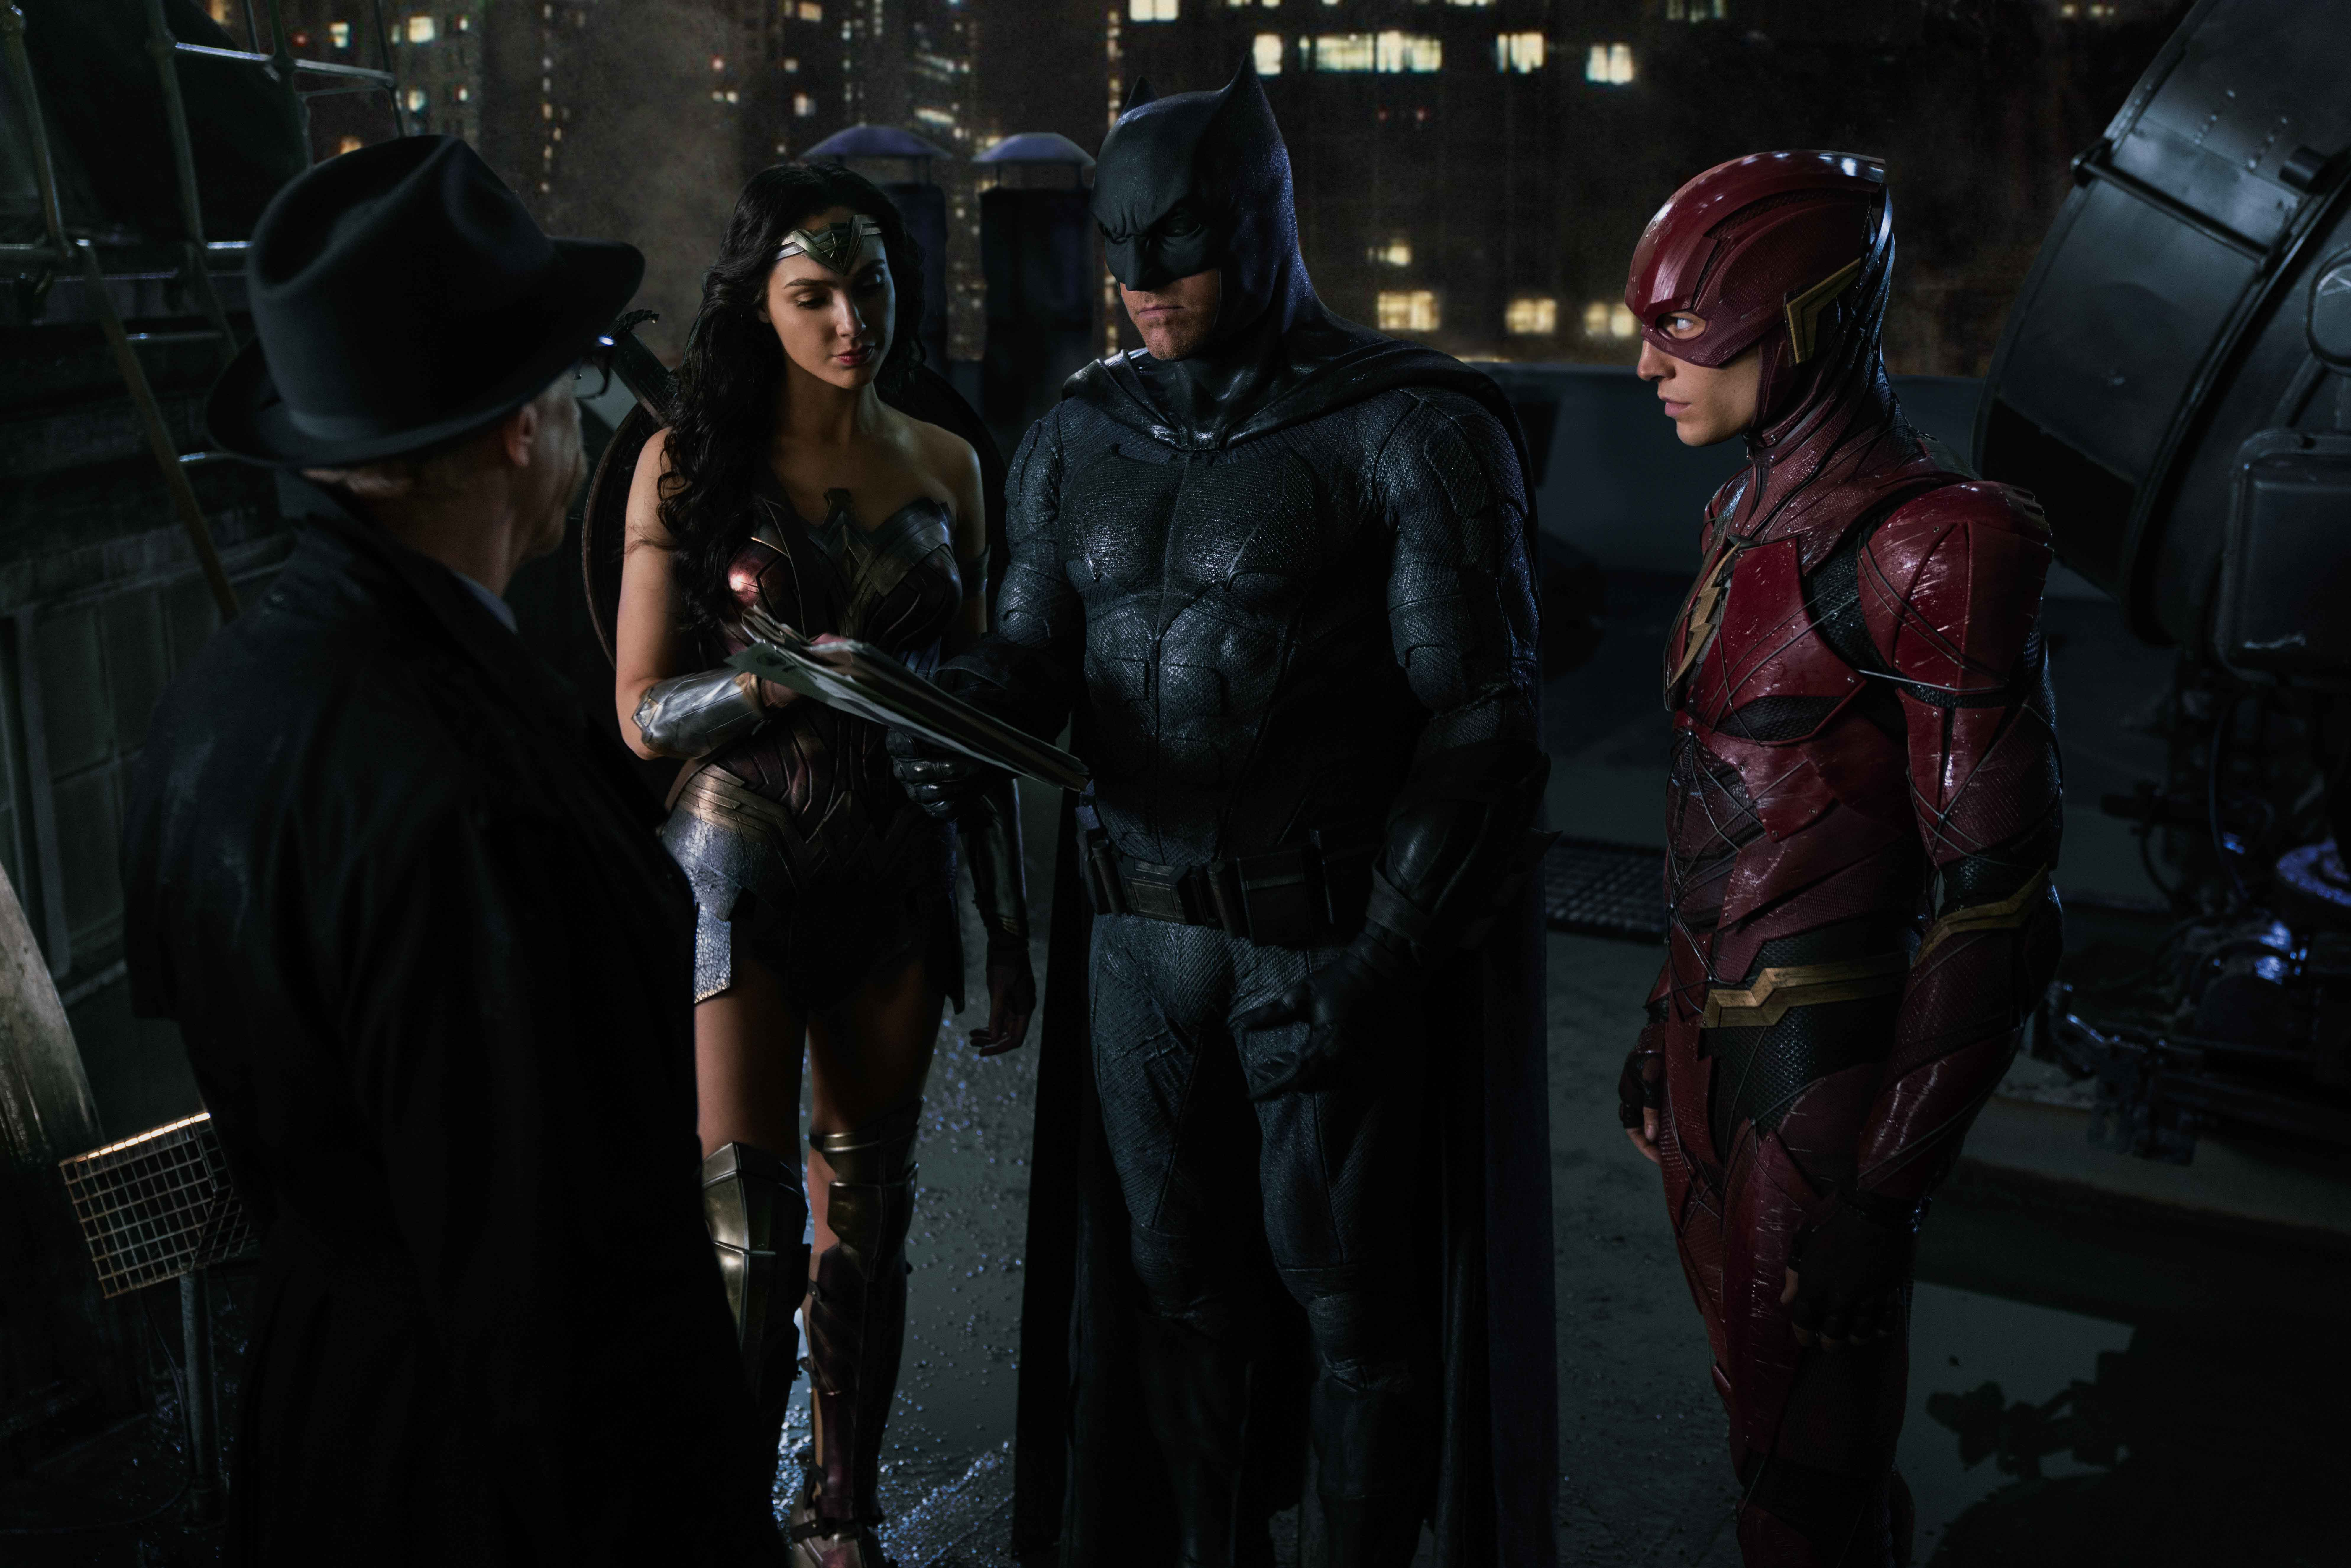 Justice League Movie Hd Movies 4k Wallpapers Images: Justice League Behind The Scene, HD Movies, 4k Wallpapers